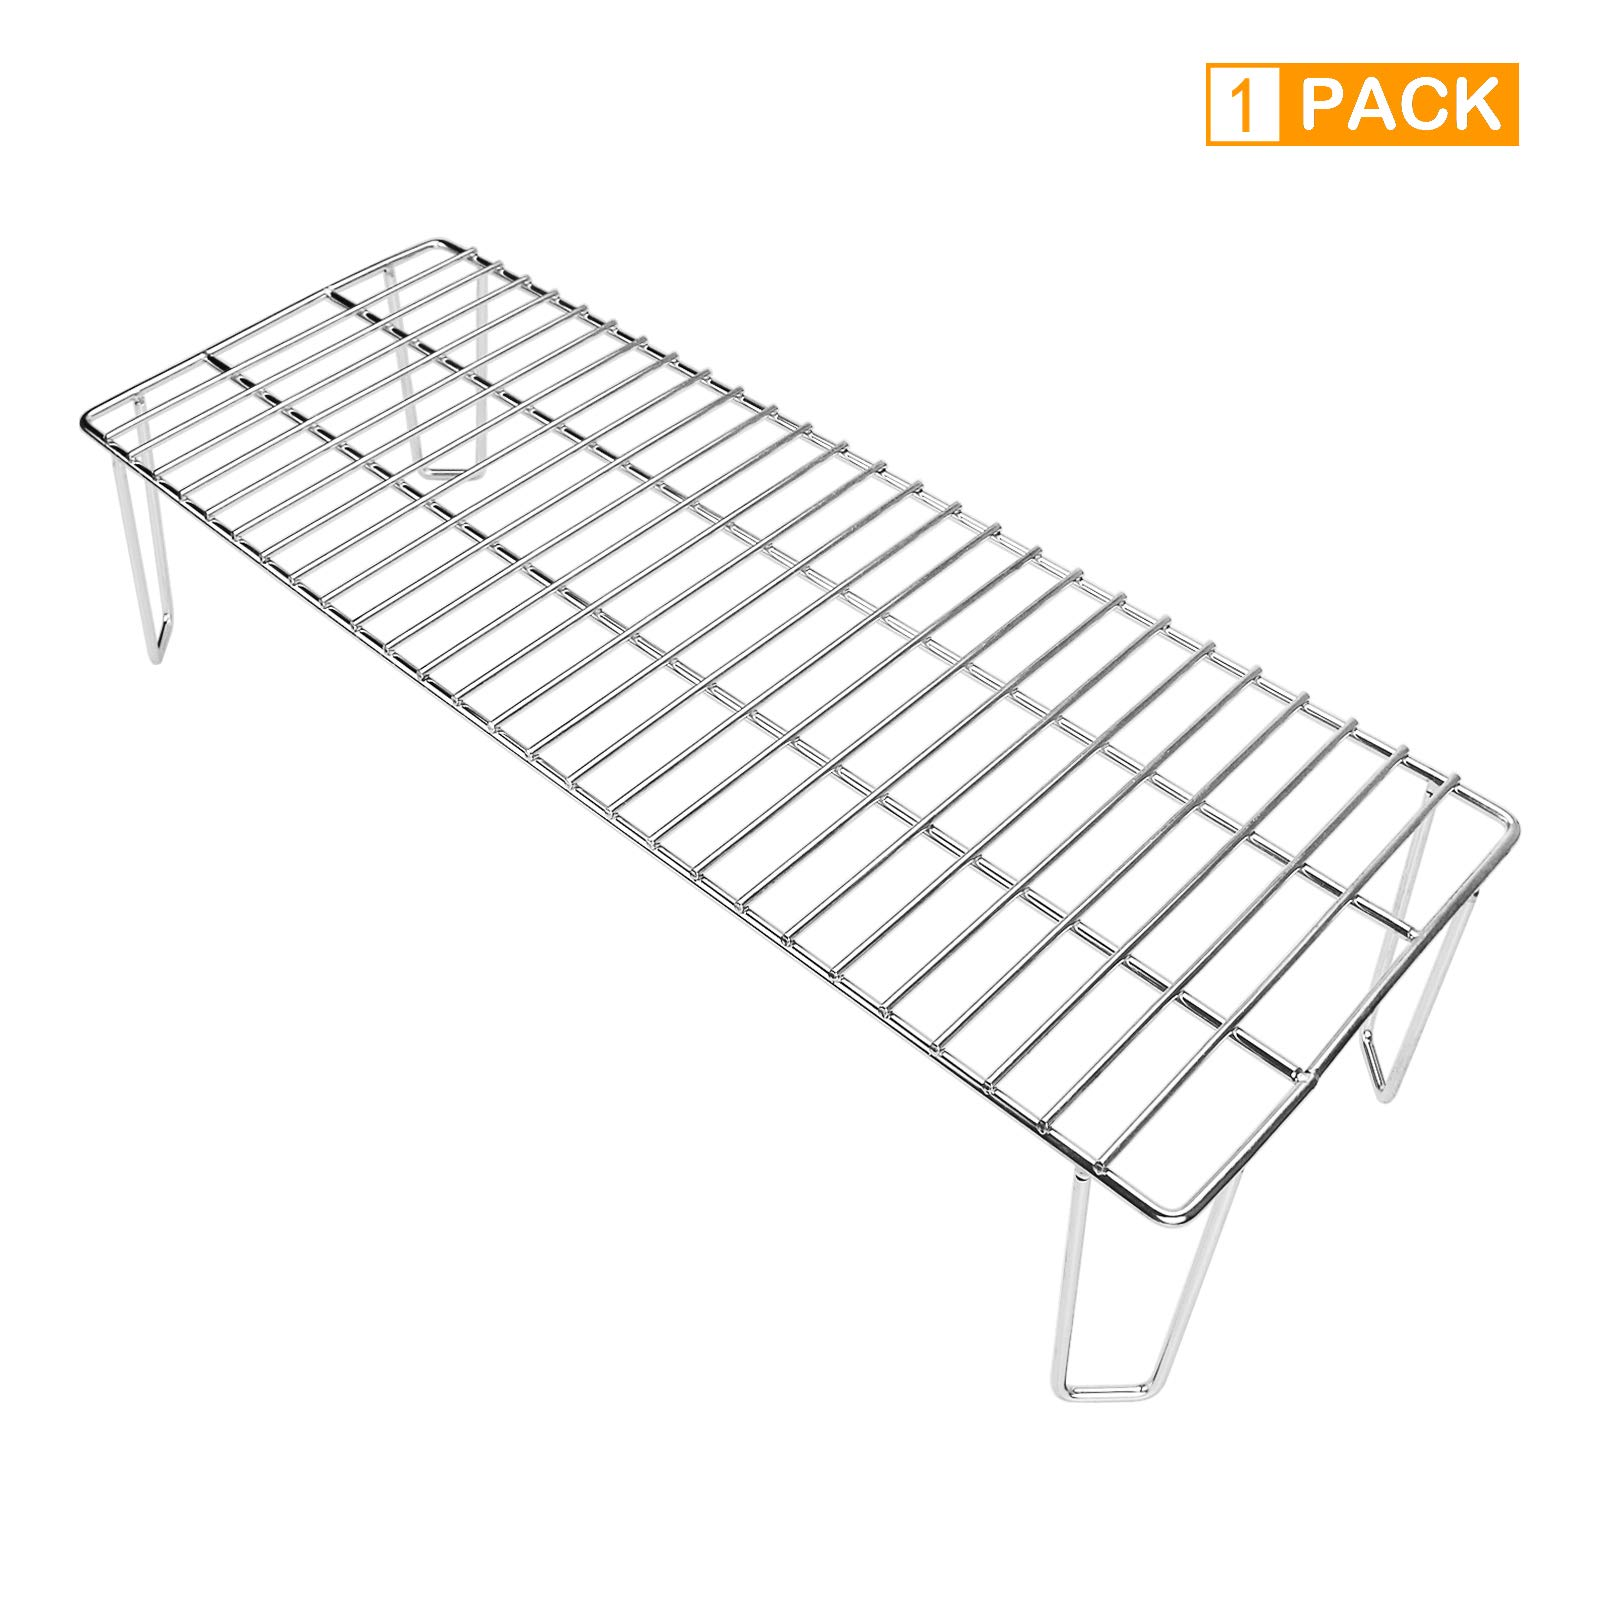 Grisun 6008 Stainless Steel Upper Rack, Warming Rack for Green Mountain Grills Rack Accessories Daniel Boone Pellet Grill Grate (22 x 8 x 4.7 Inches) by Grisun